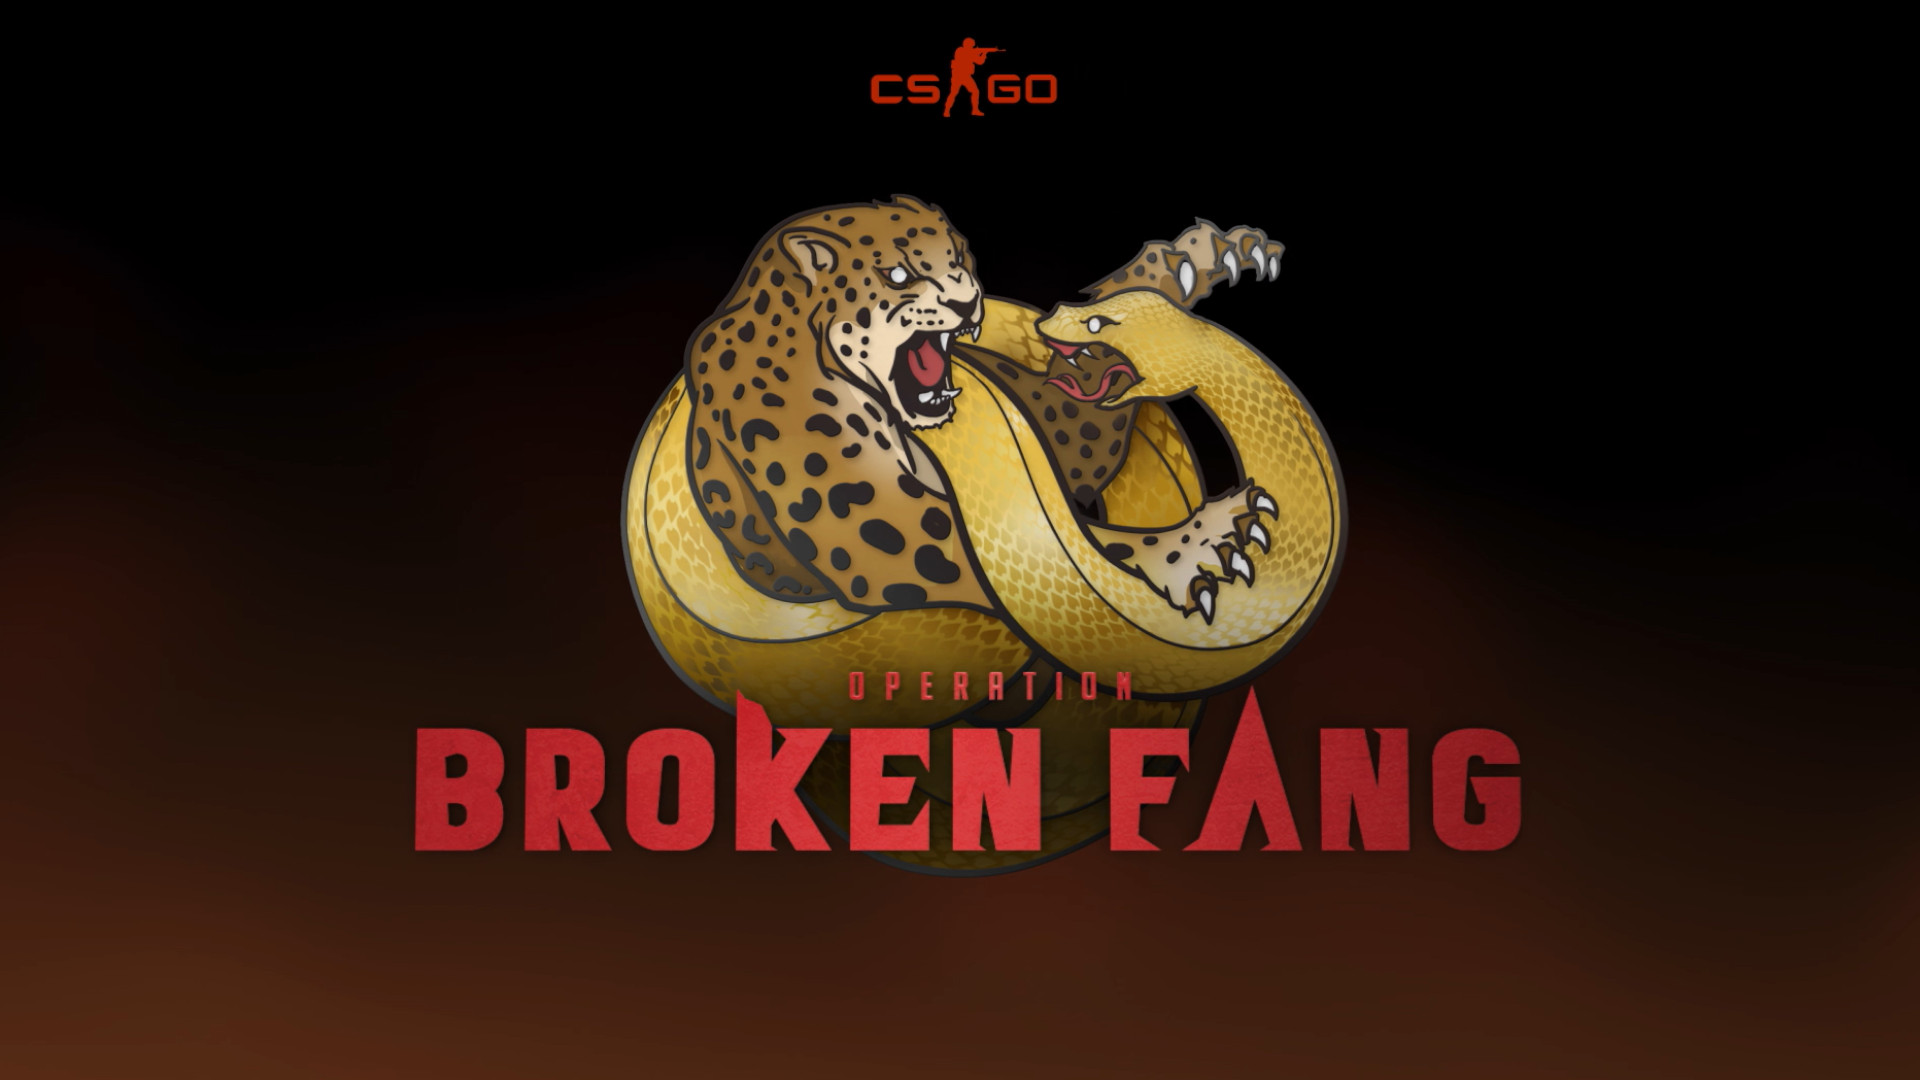 Here are this week's CS:GO Broken Fang missions